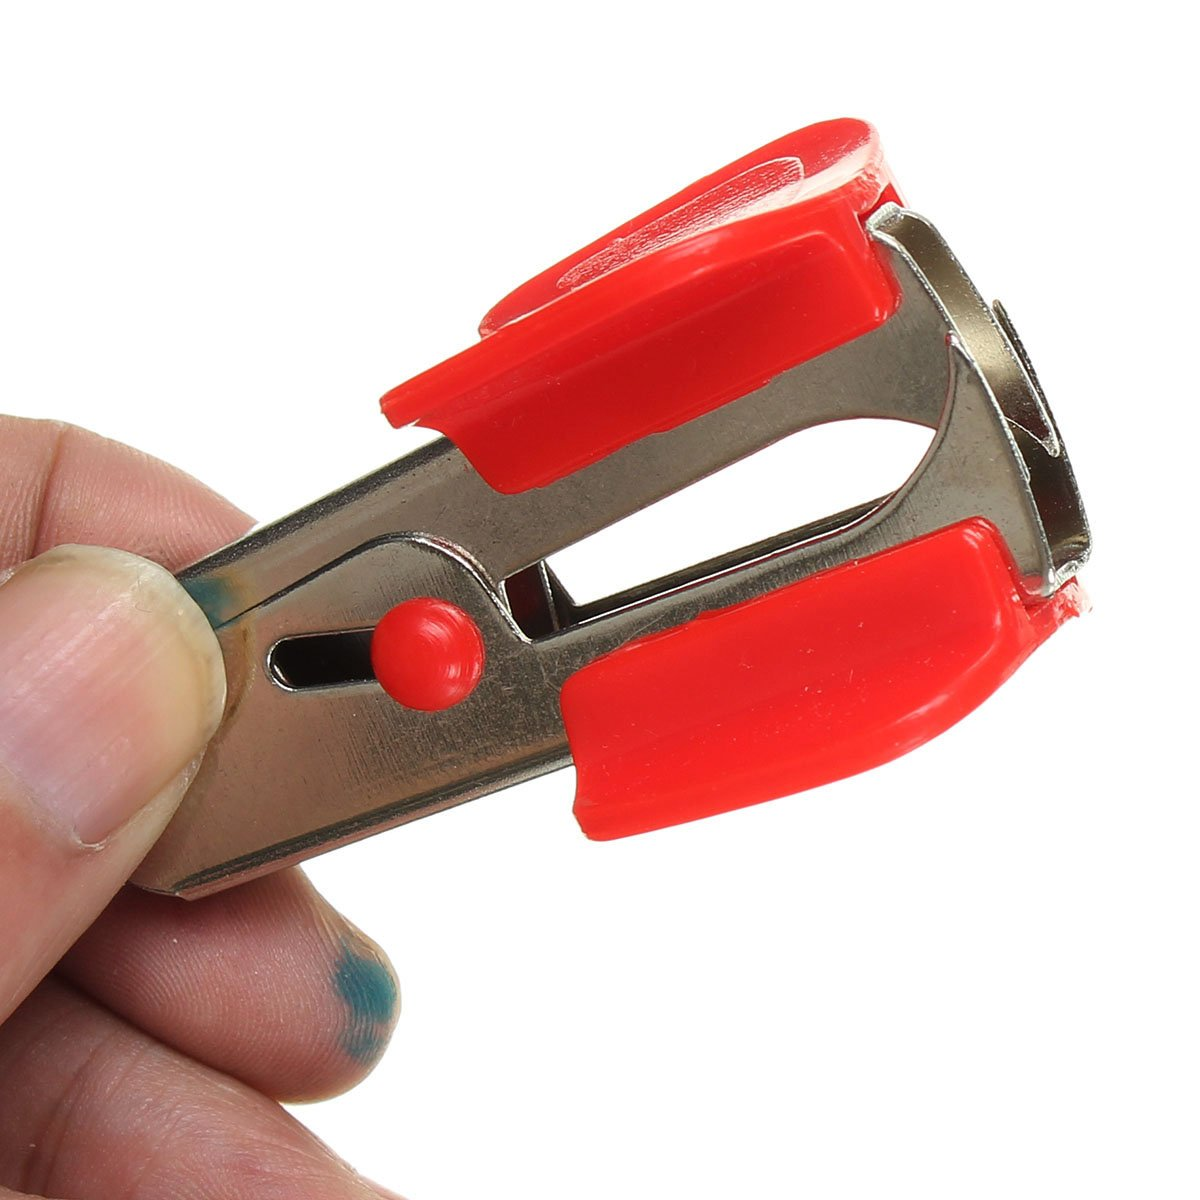 Plastic & Metal Mini Stapler Accessories Staple Remover for Home Office School by Thailand (Image #2)